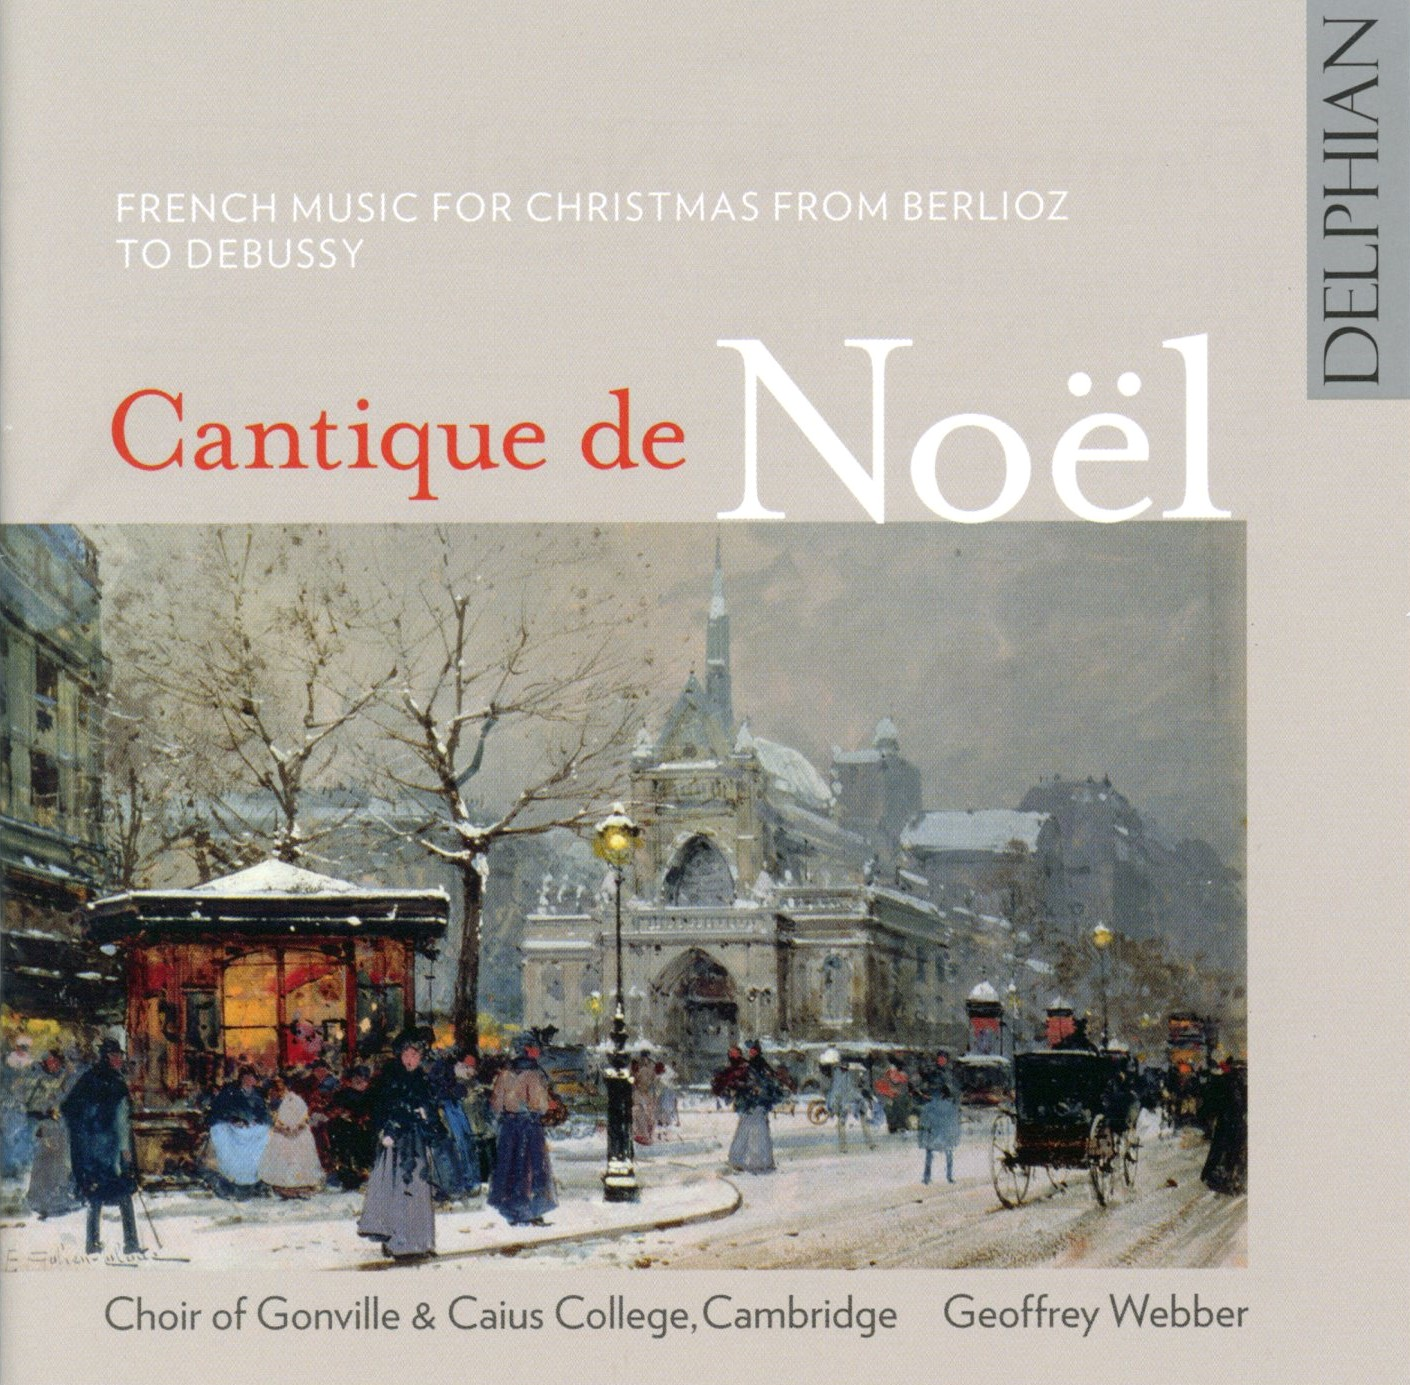 Cantique de Noel CD